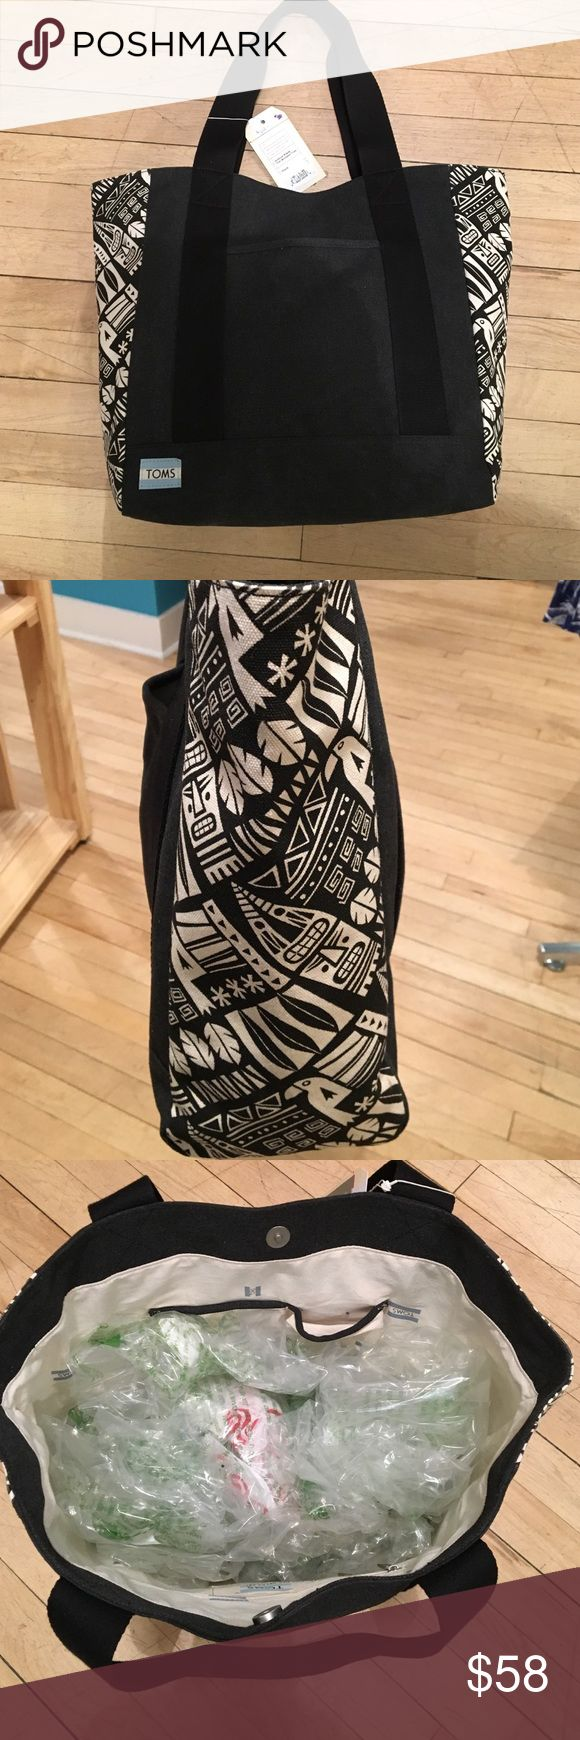 Toms Aztec tote bag Super cute and spacious! New with tags. One putter pocket. One inner zipper. Two inner pockets. Toms brand. Toms Bags Totes